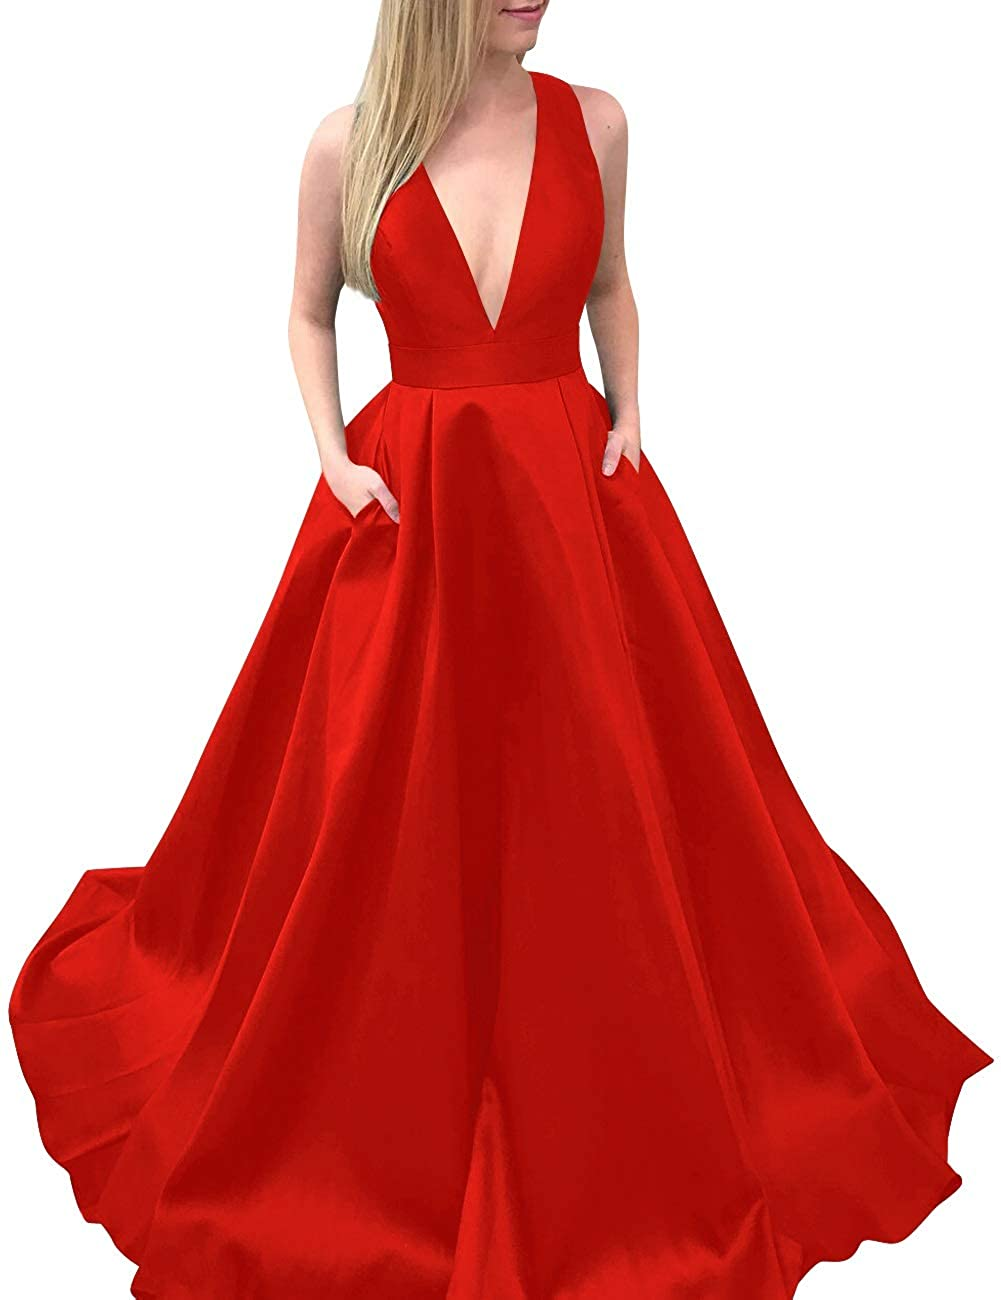 Red MorySong Women's Deep VNeck Bowknot Back Satin Prom Evening Dress with Pockets